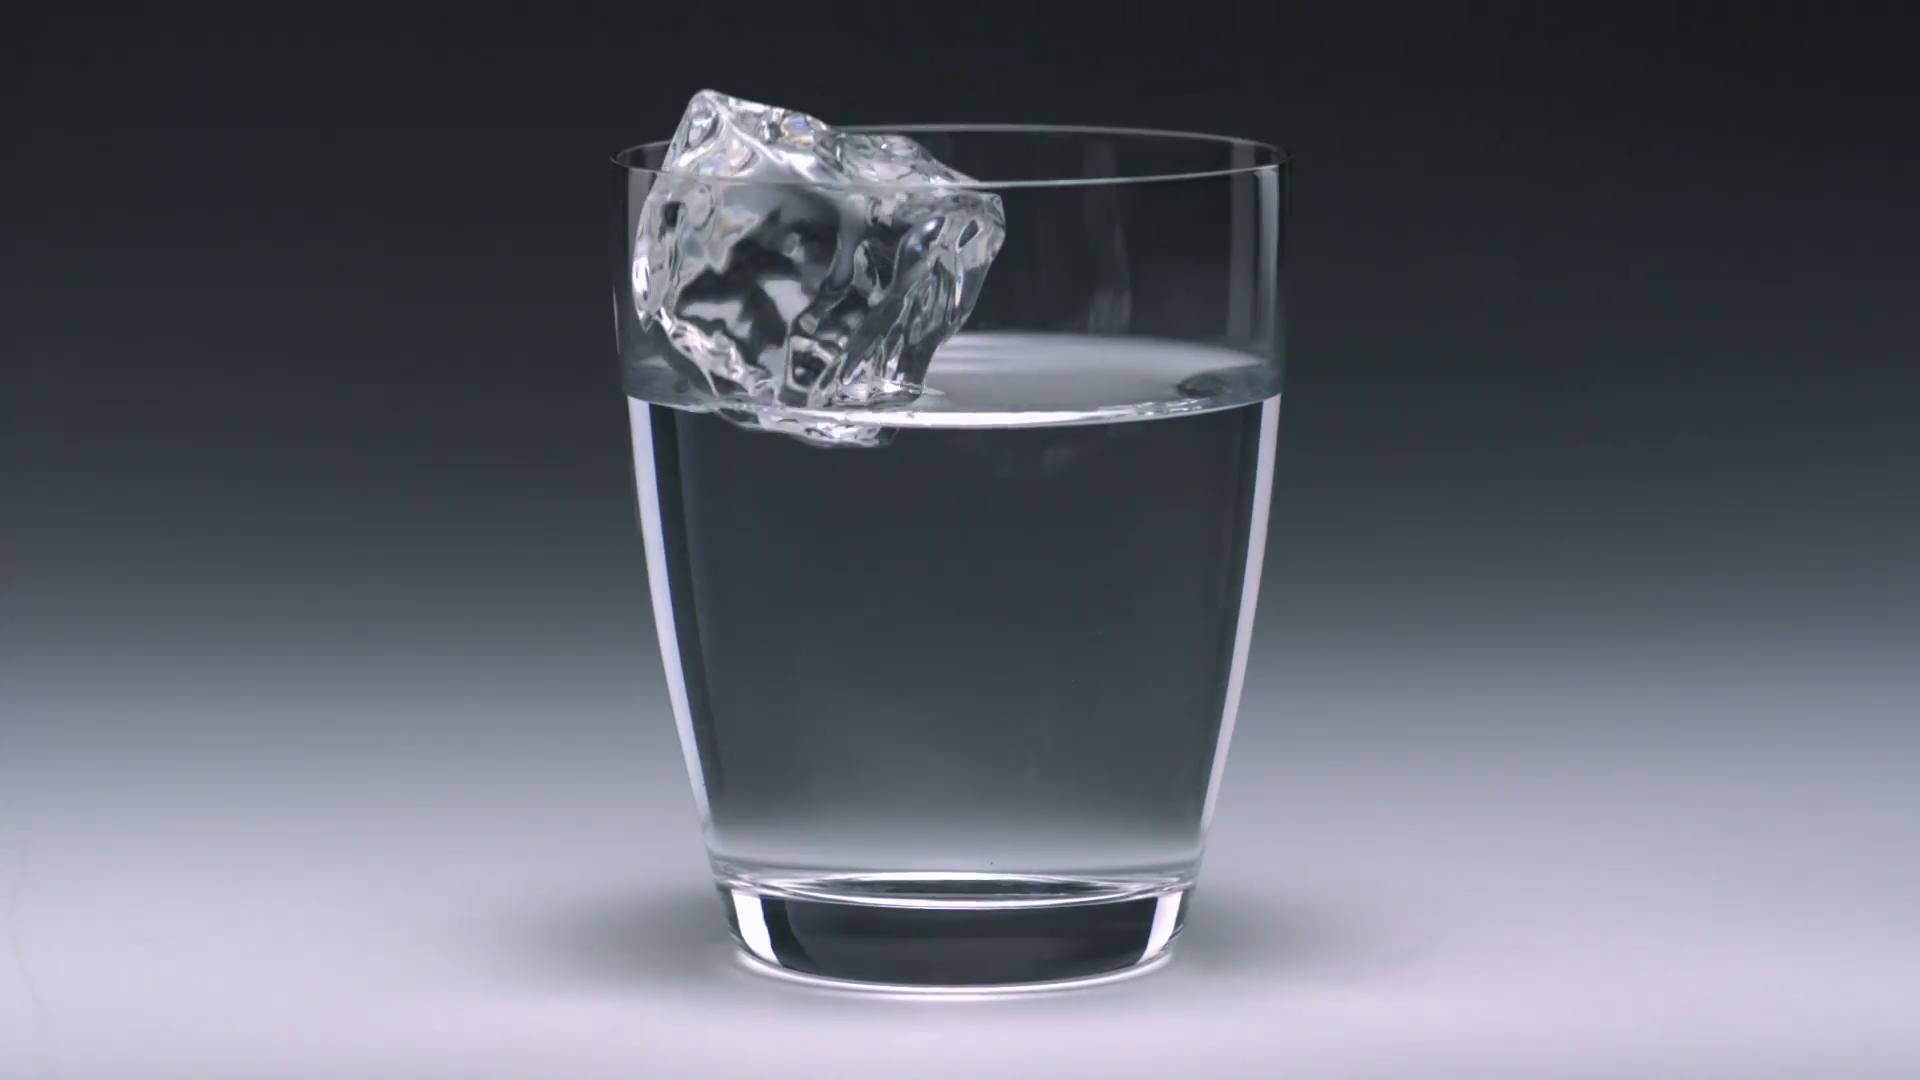 Ice cubes in a glass with water - Slow Motion Stock Video Footage ...